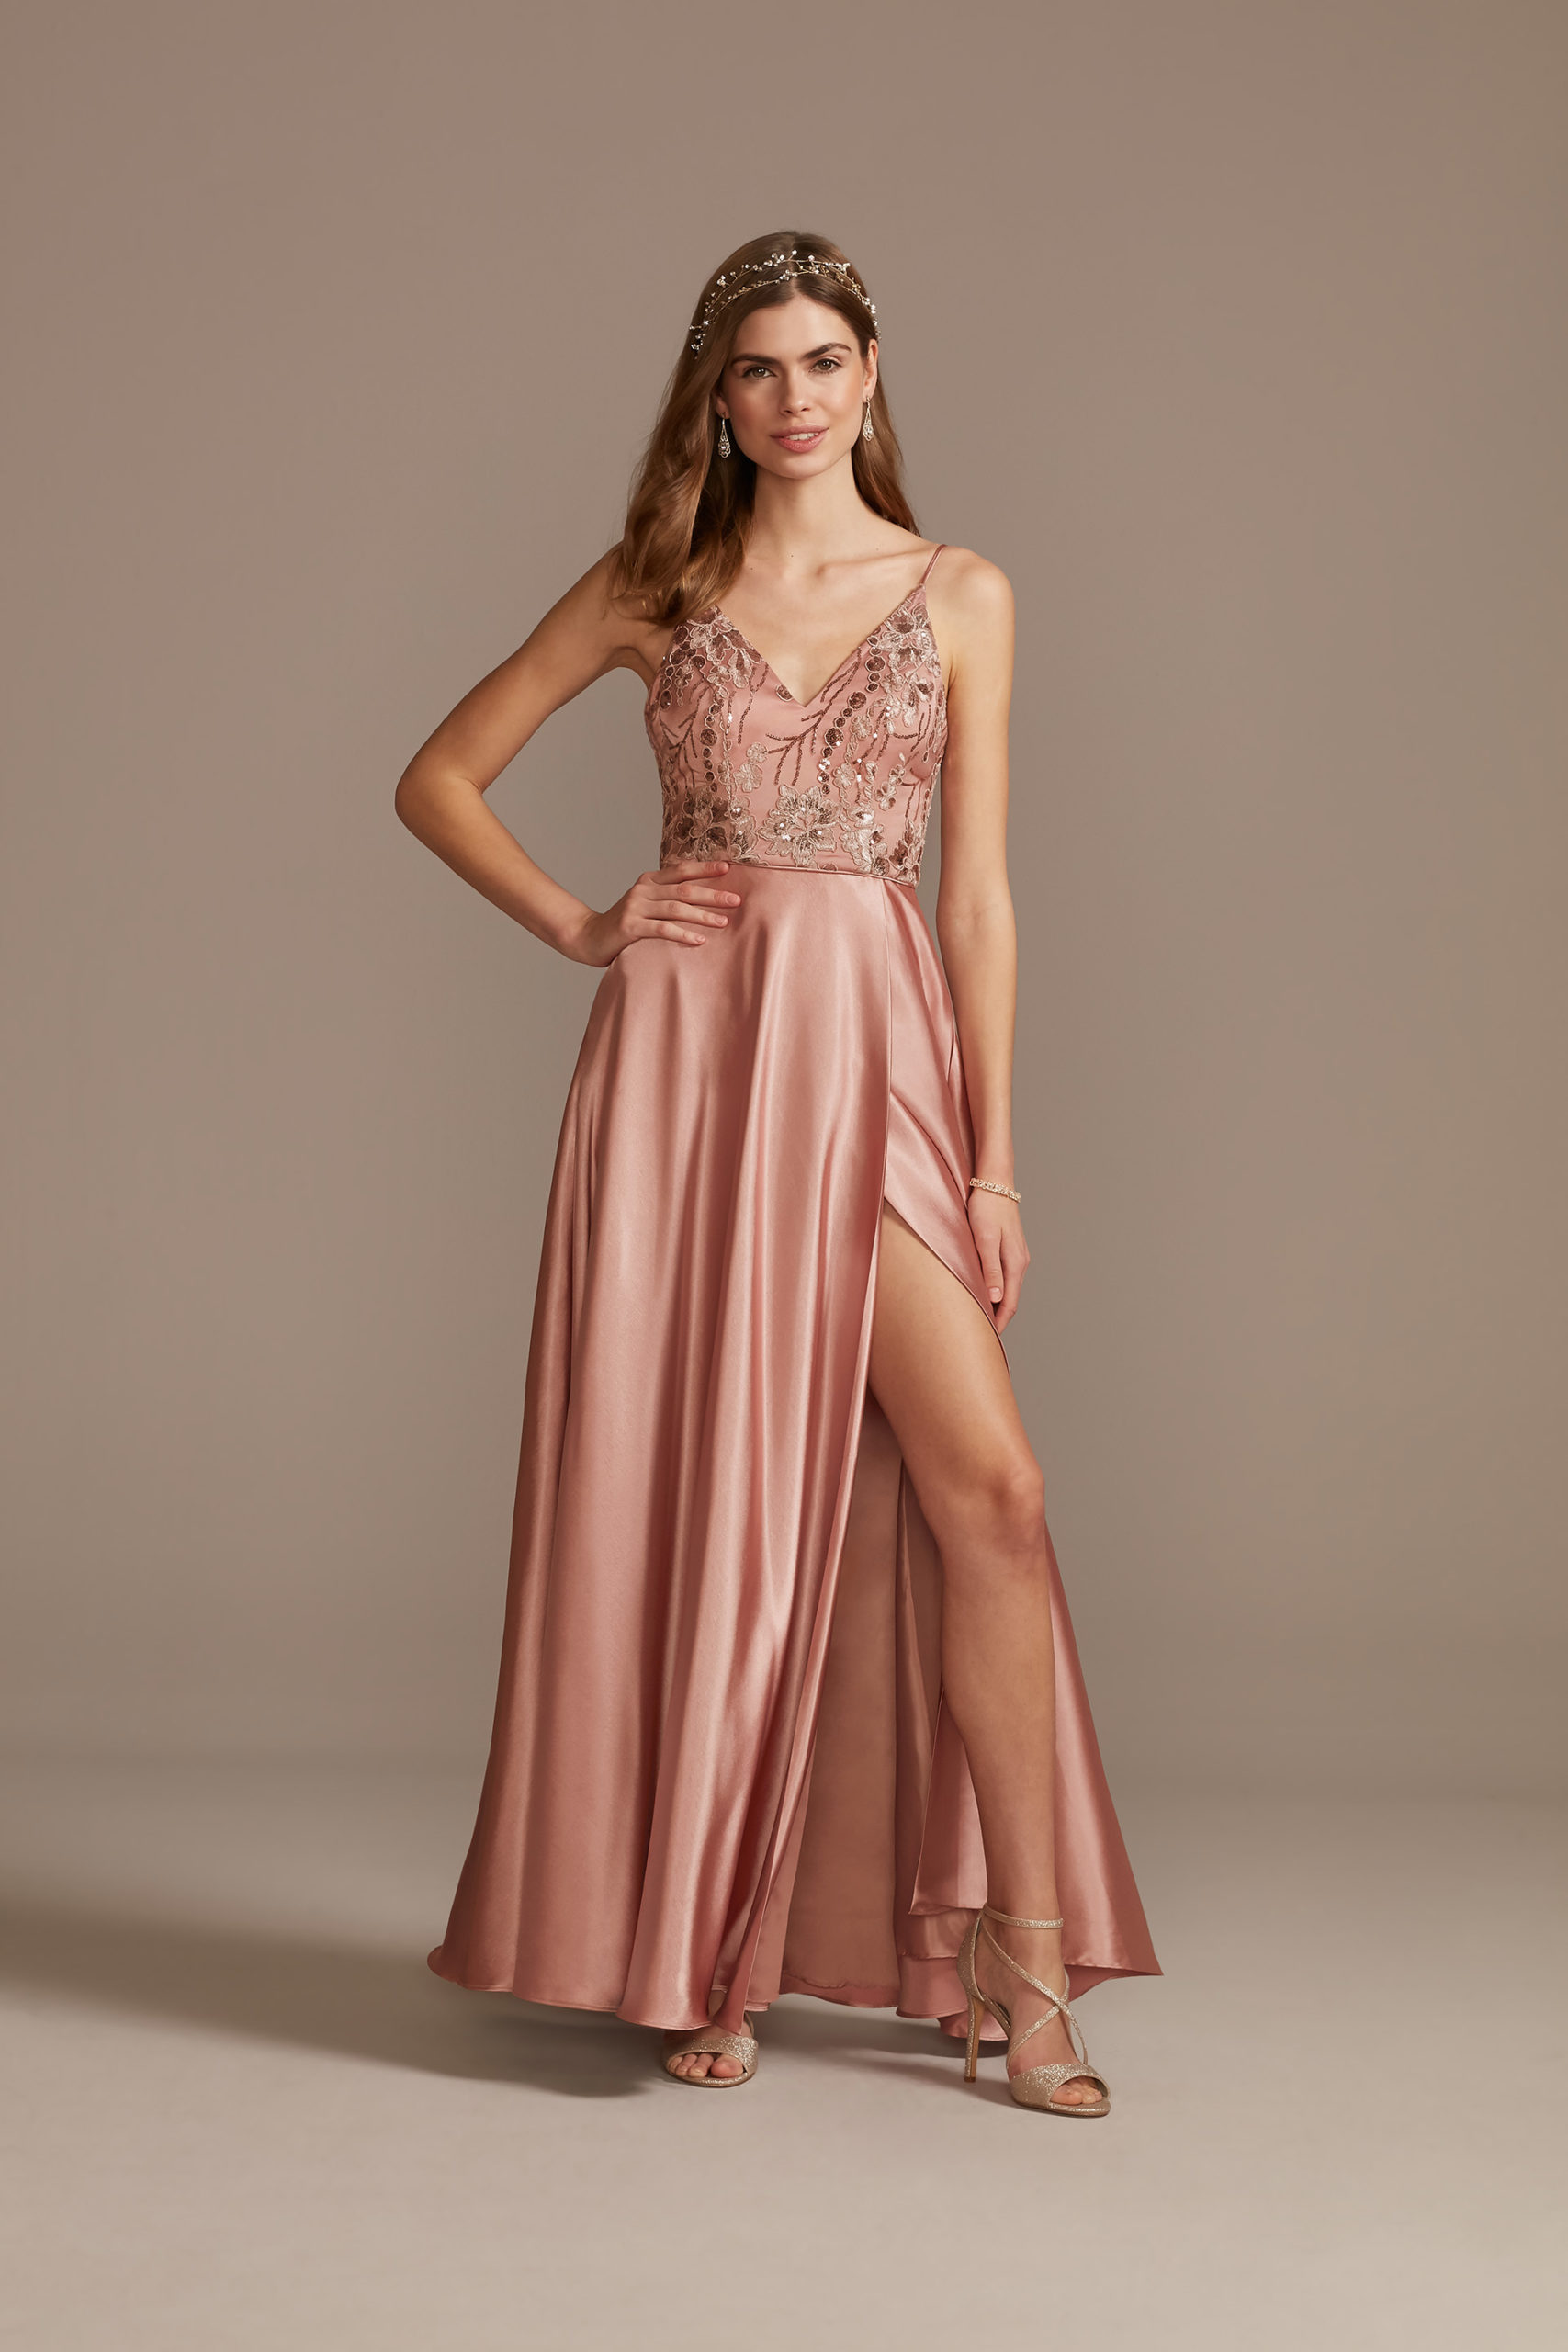 peach Floral Embellished prom dress with Satin Split Skirt